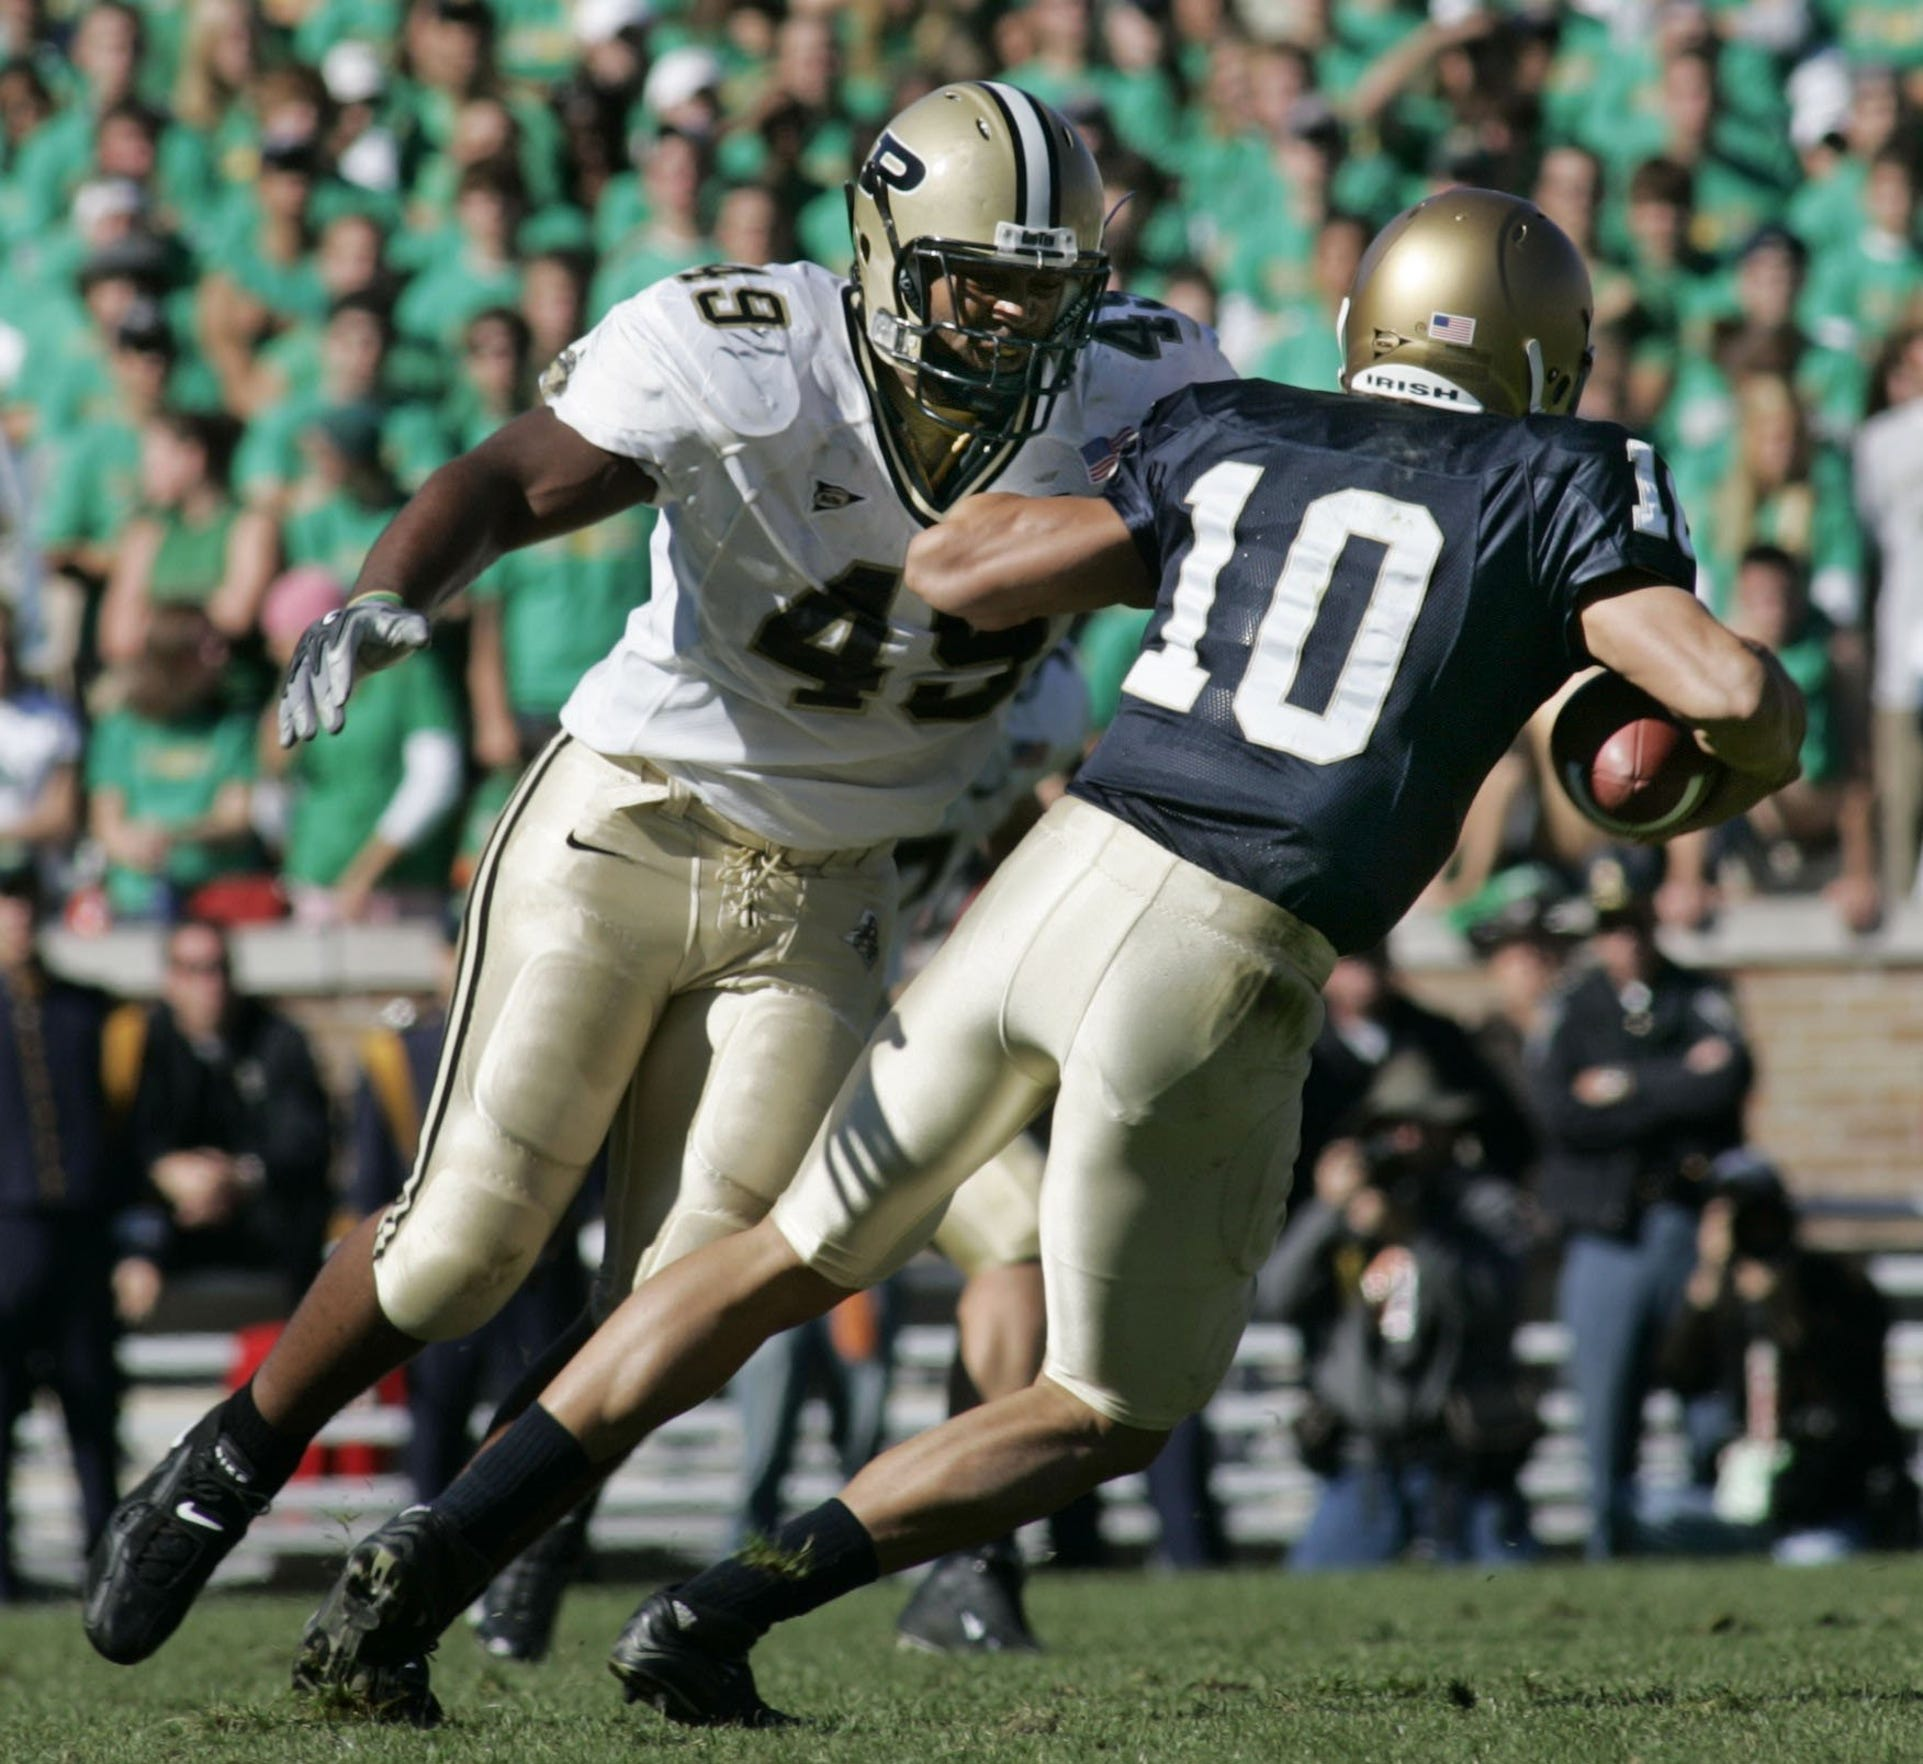 Anthony Spencer chases down Notre Dame quarterback Brady Quinn for a sack in the second quarter of Purdue's 41-16 victory in South Bend in 2004.